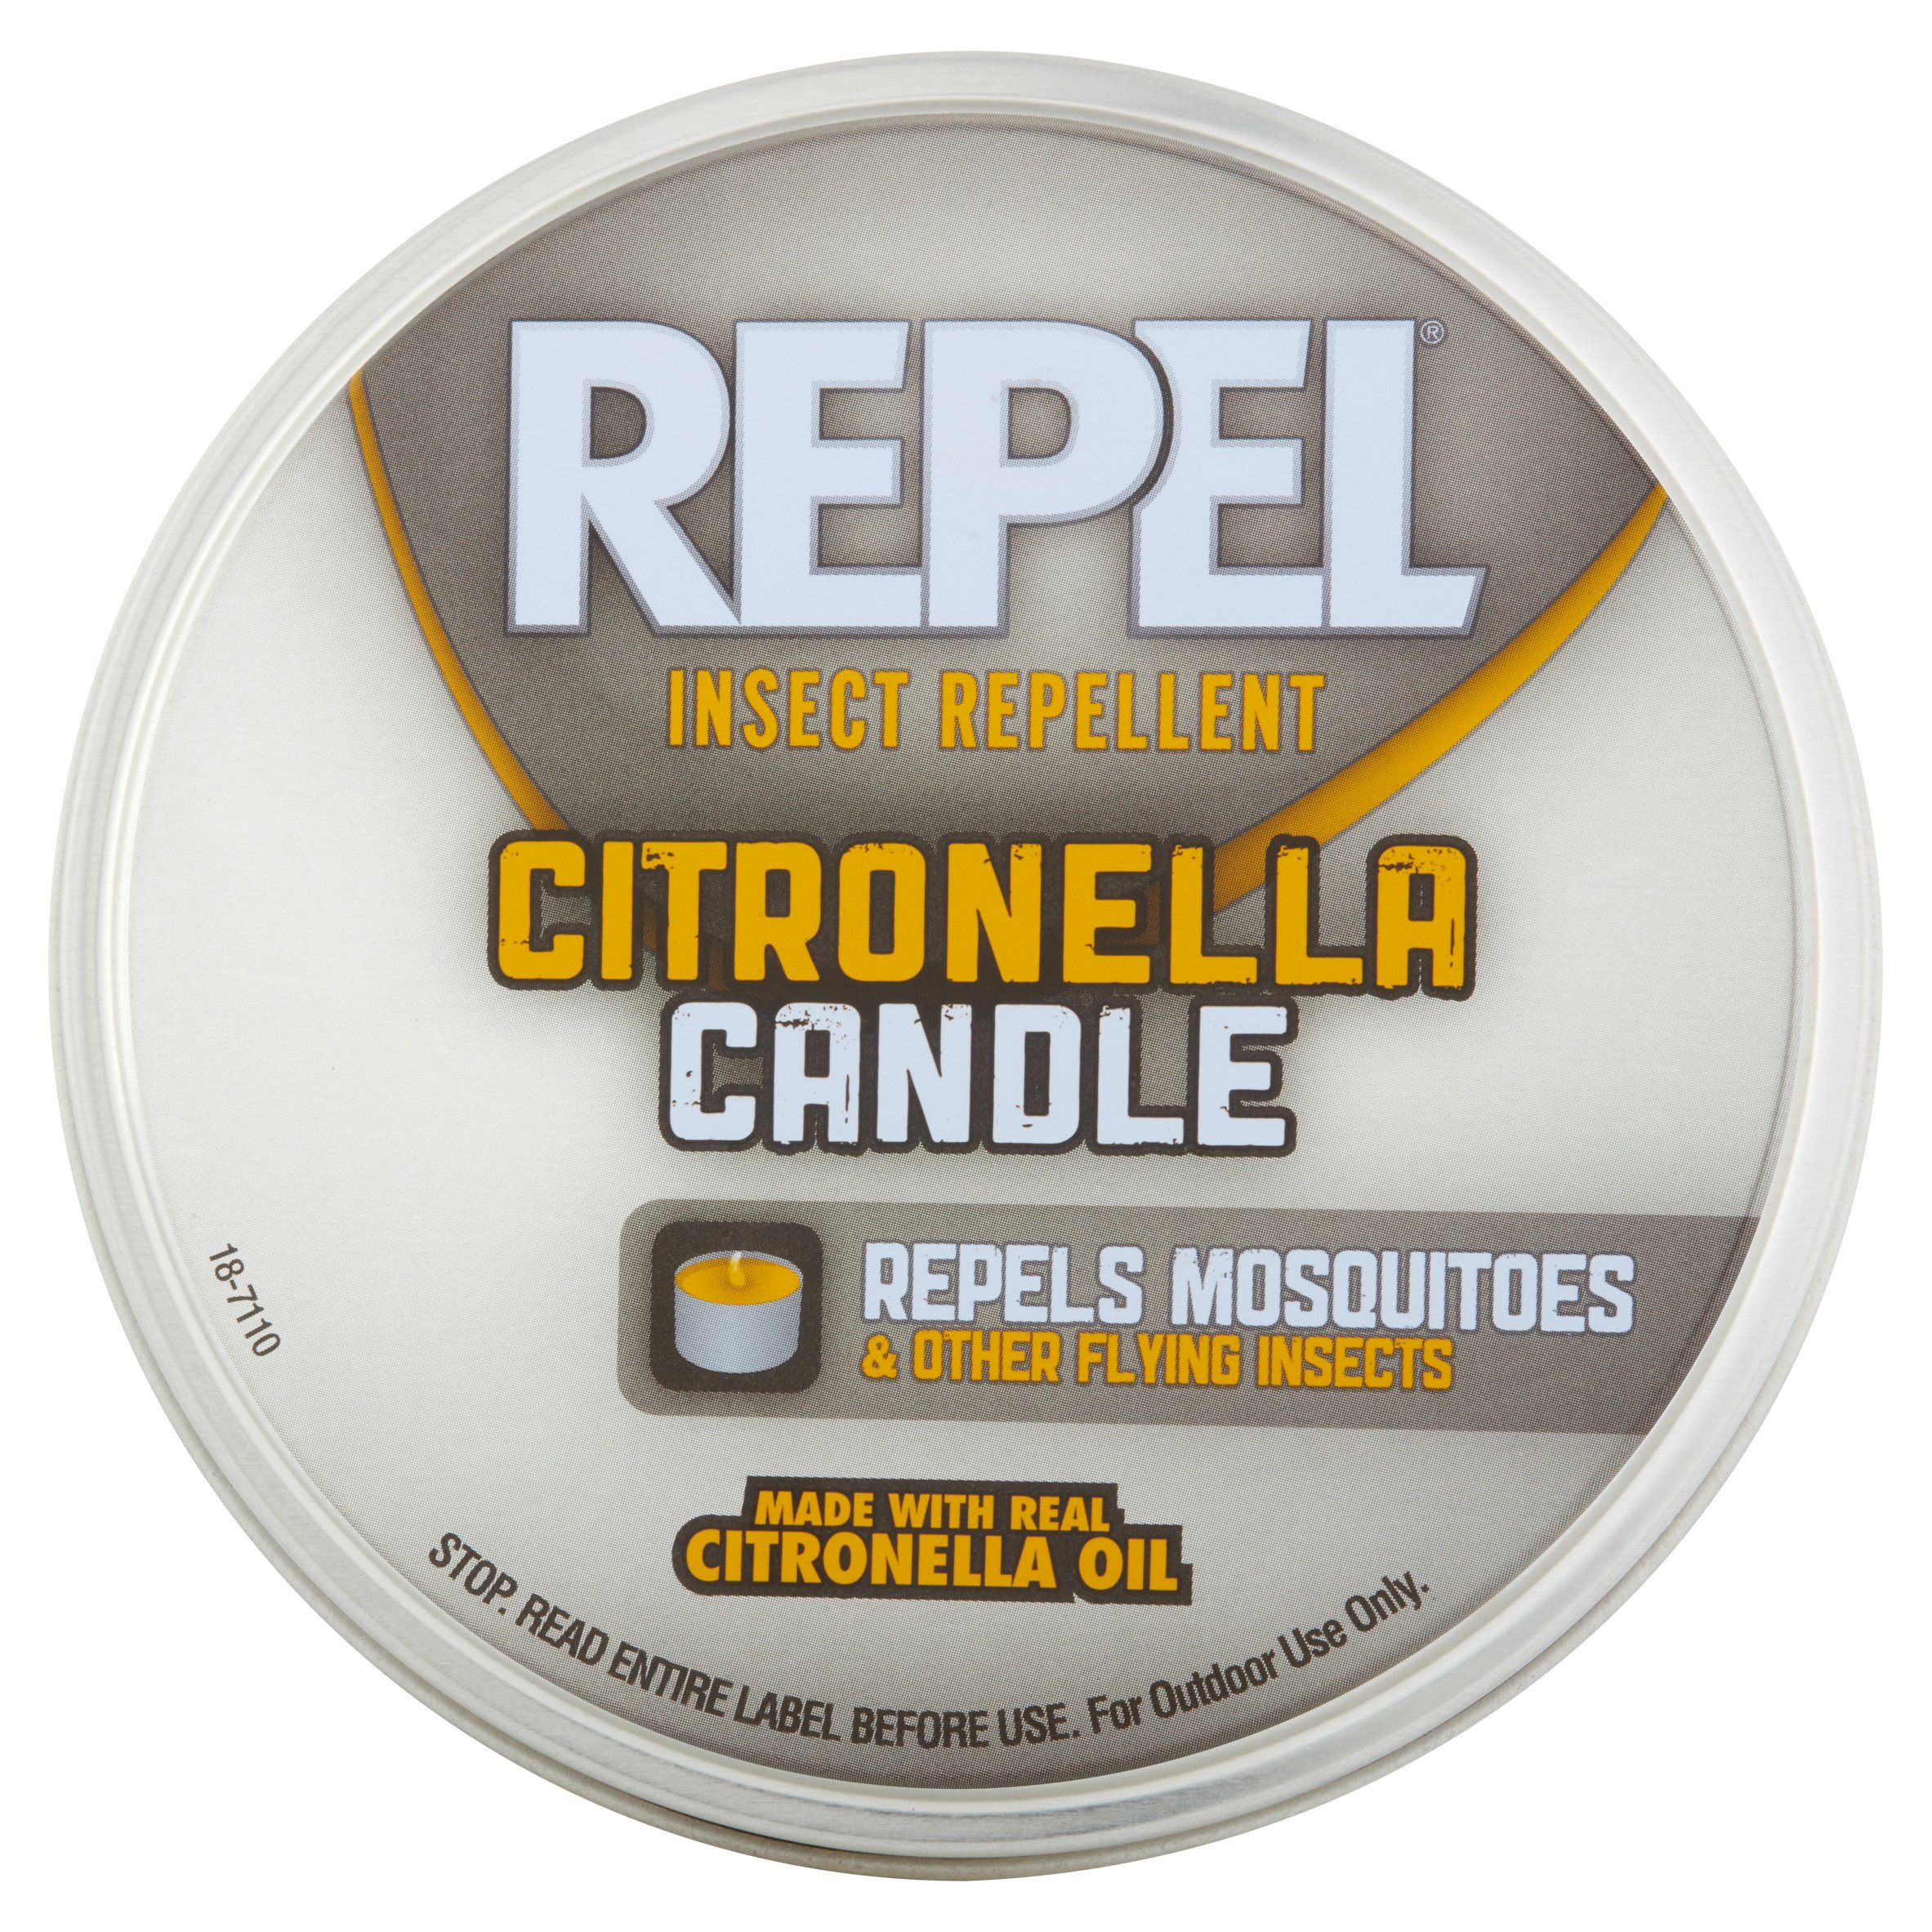 Repel Insect Repellent Citronella Candle, 10-Ounces